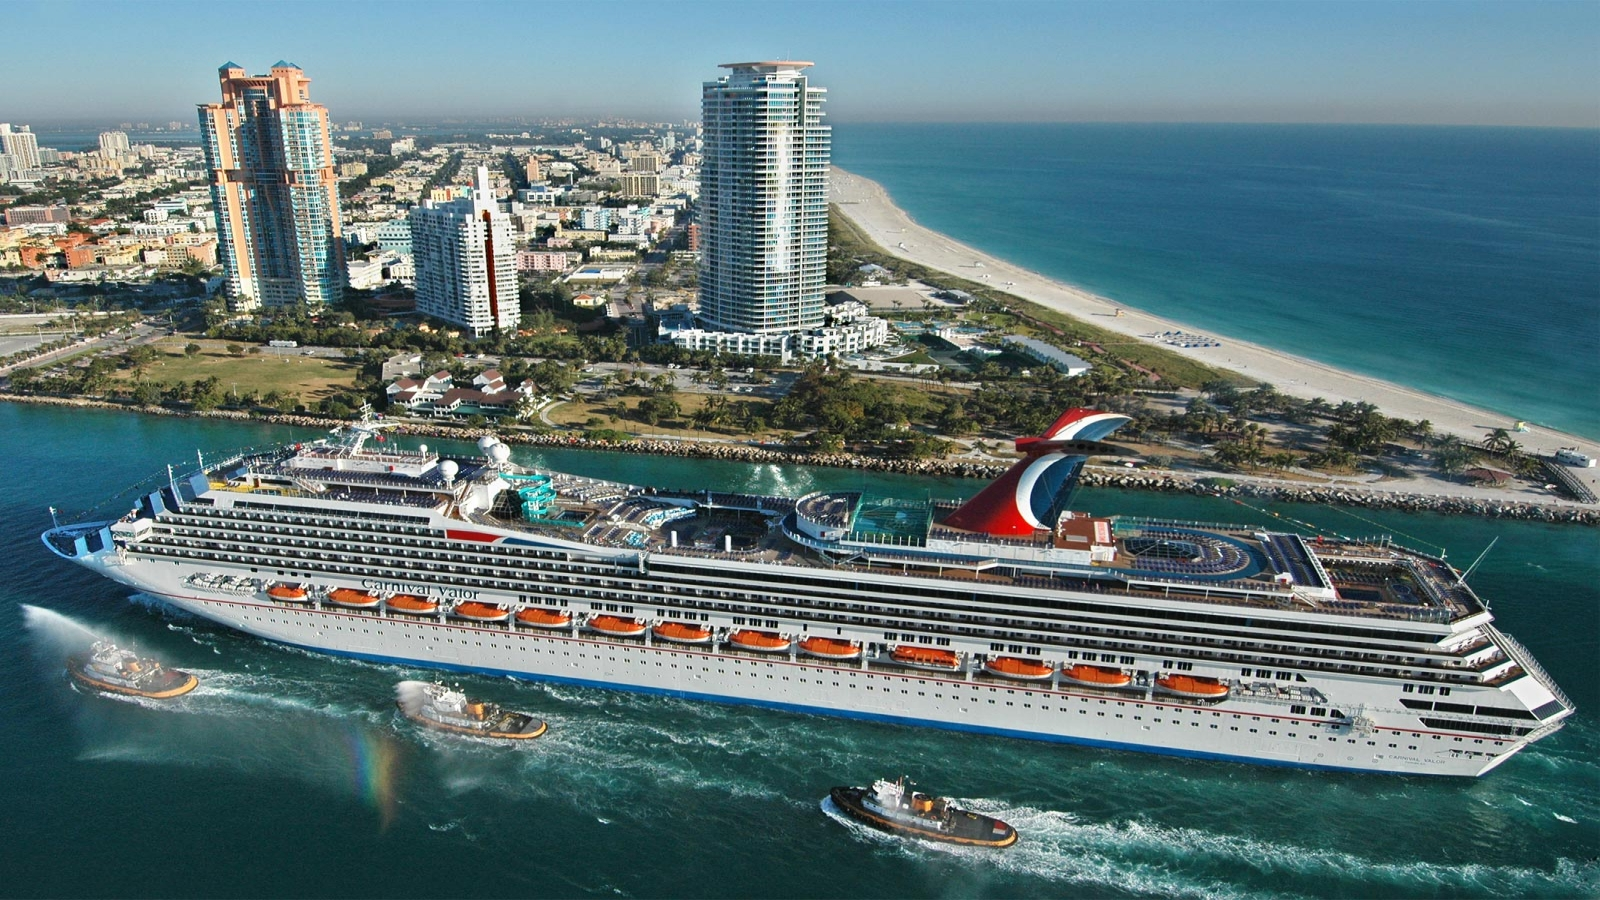 Landscape Wallpapers Carnival Valor Cruise Ship Miami 10027 1600x900